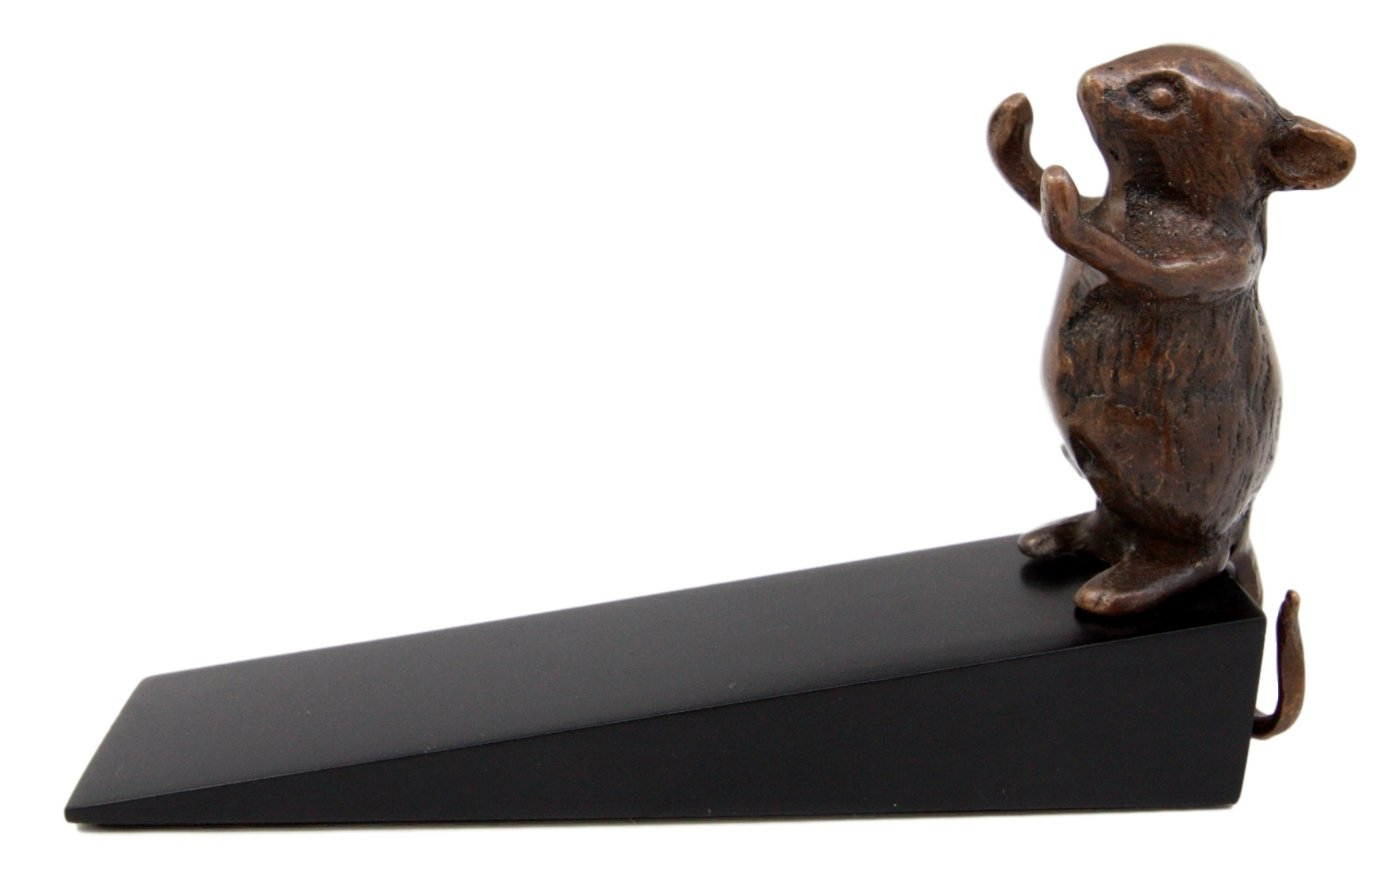 Atlantic Collectibles Brass Metal Whimsical Pet Mouse Door Stop Stopper Wedge Home Decor by Ebros Gift (Image #7)